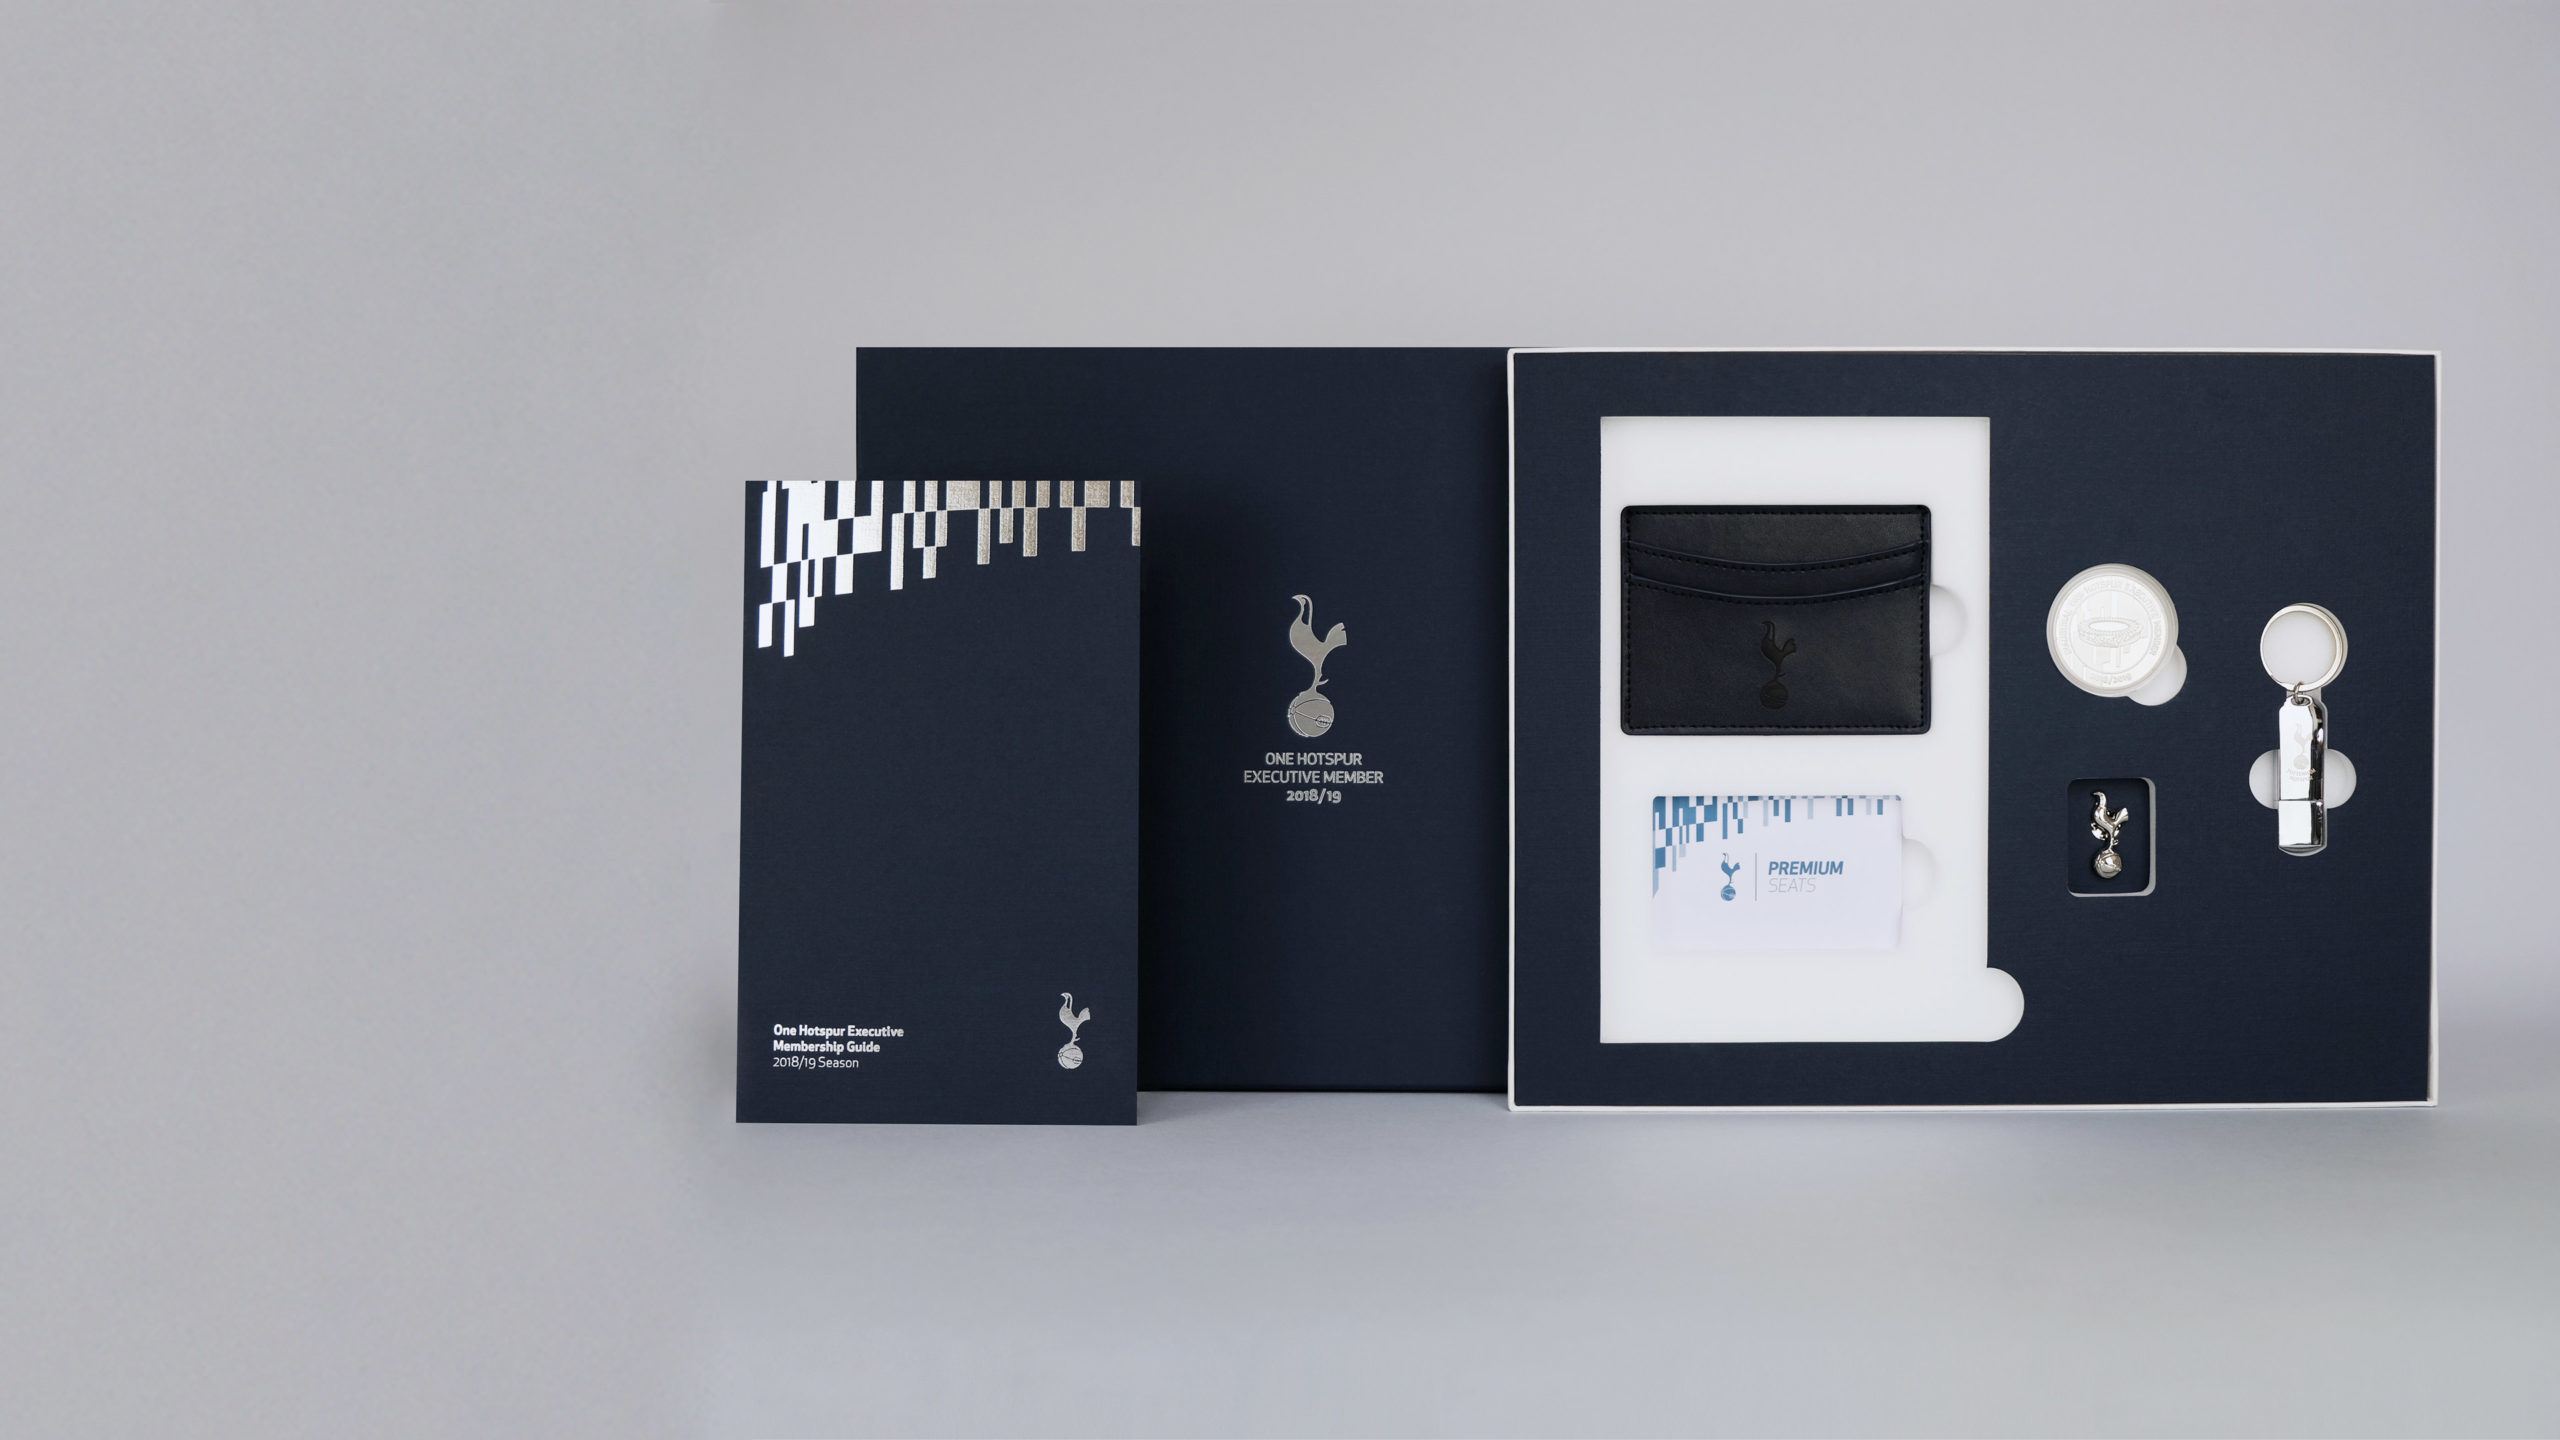 Developing a series of premium membership products for a world-class football club